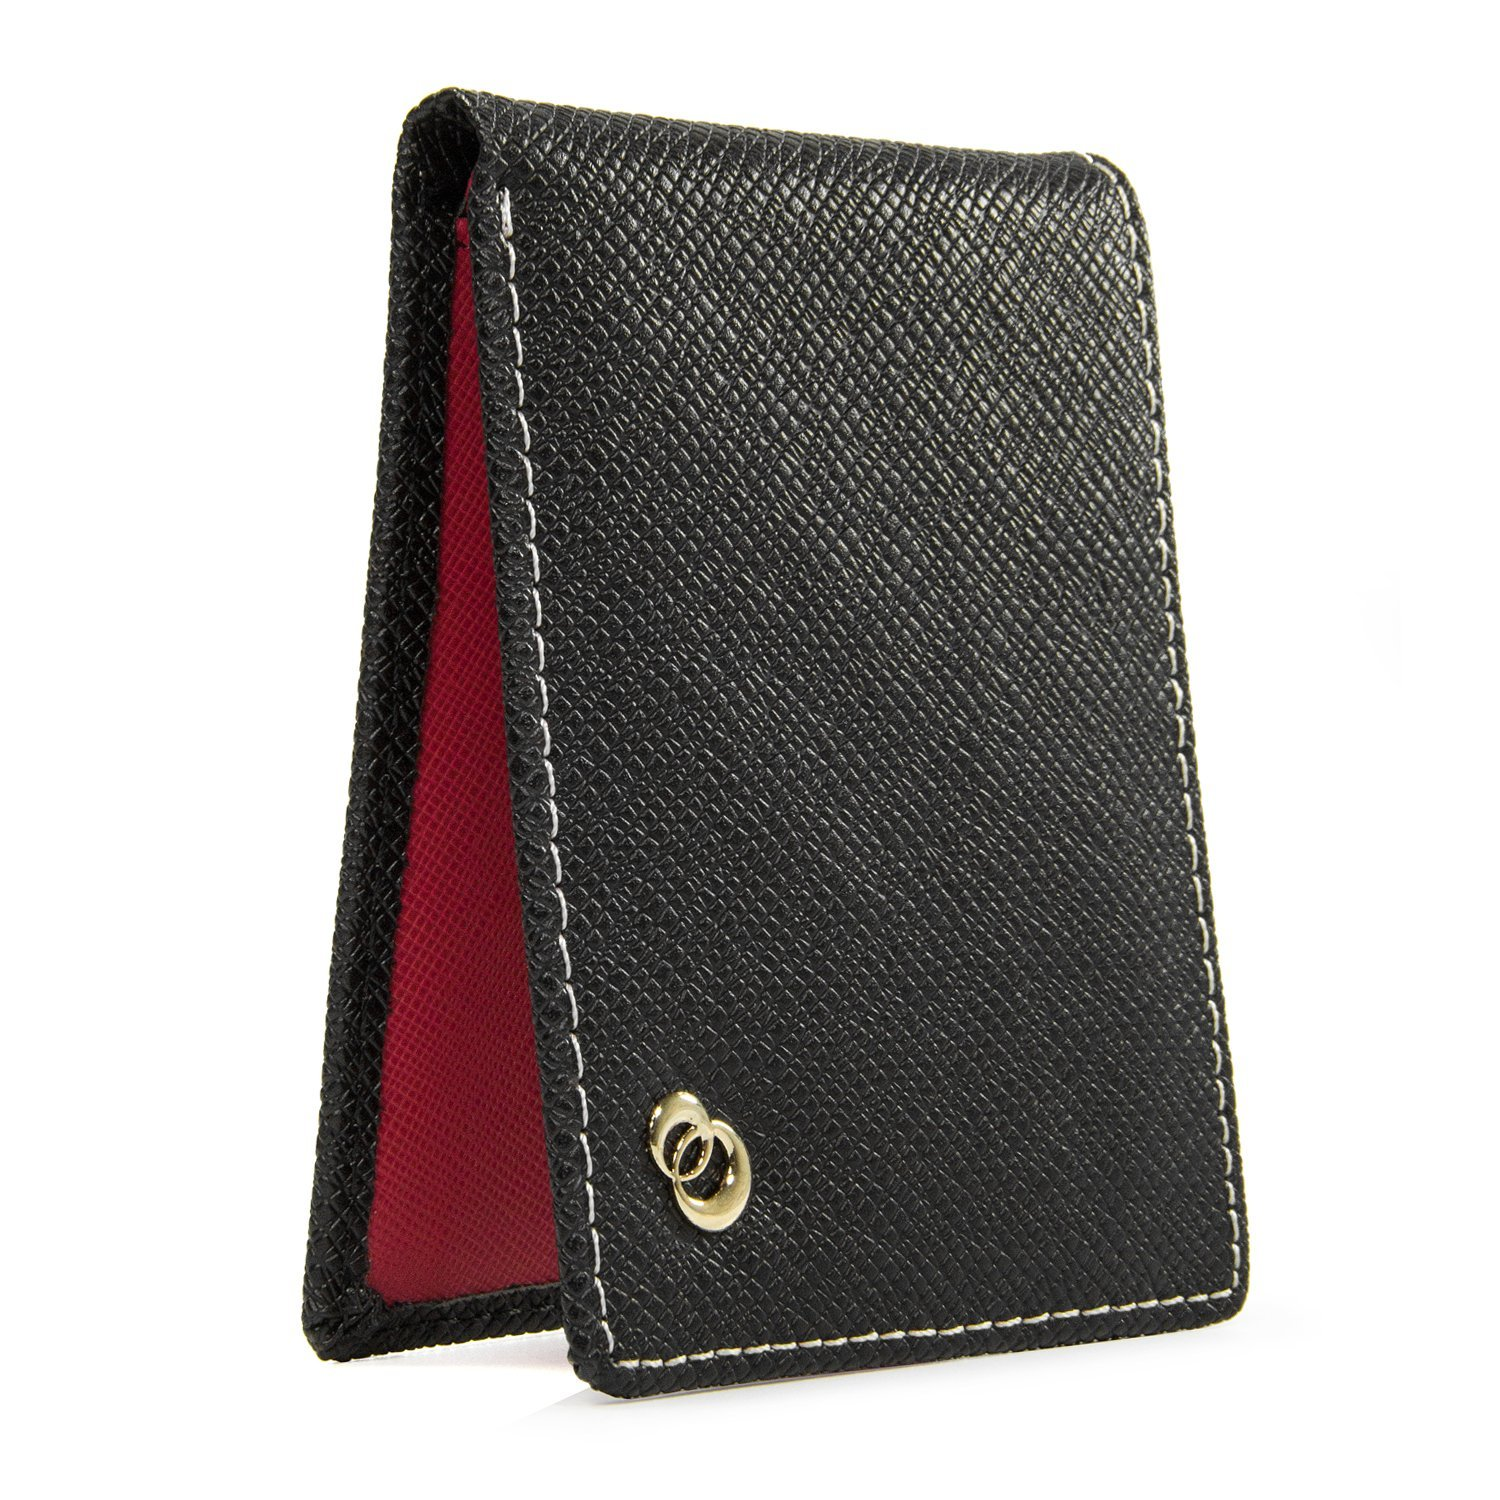 Mens Genuine Leather Wallet Slim Card Holder with Rear Coin Pouch, Travel Accessories for Cash Money, ID, Credit Cards